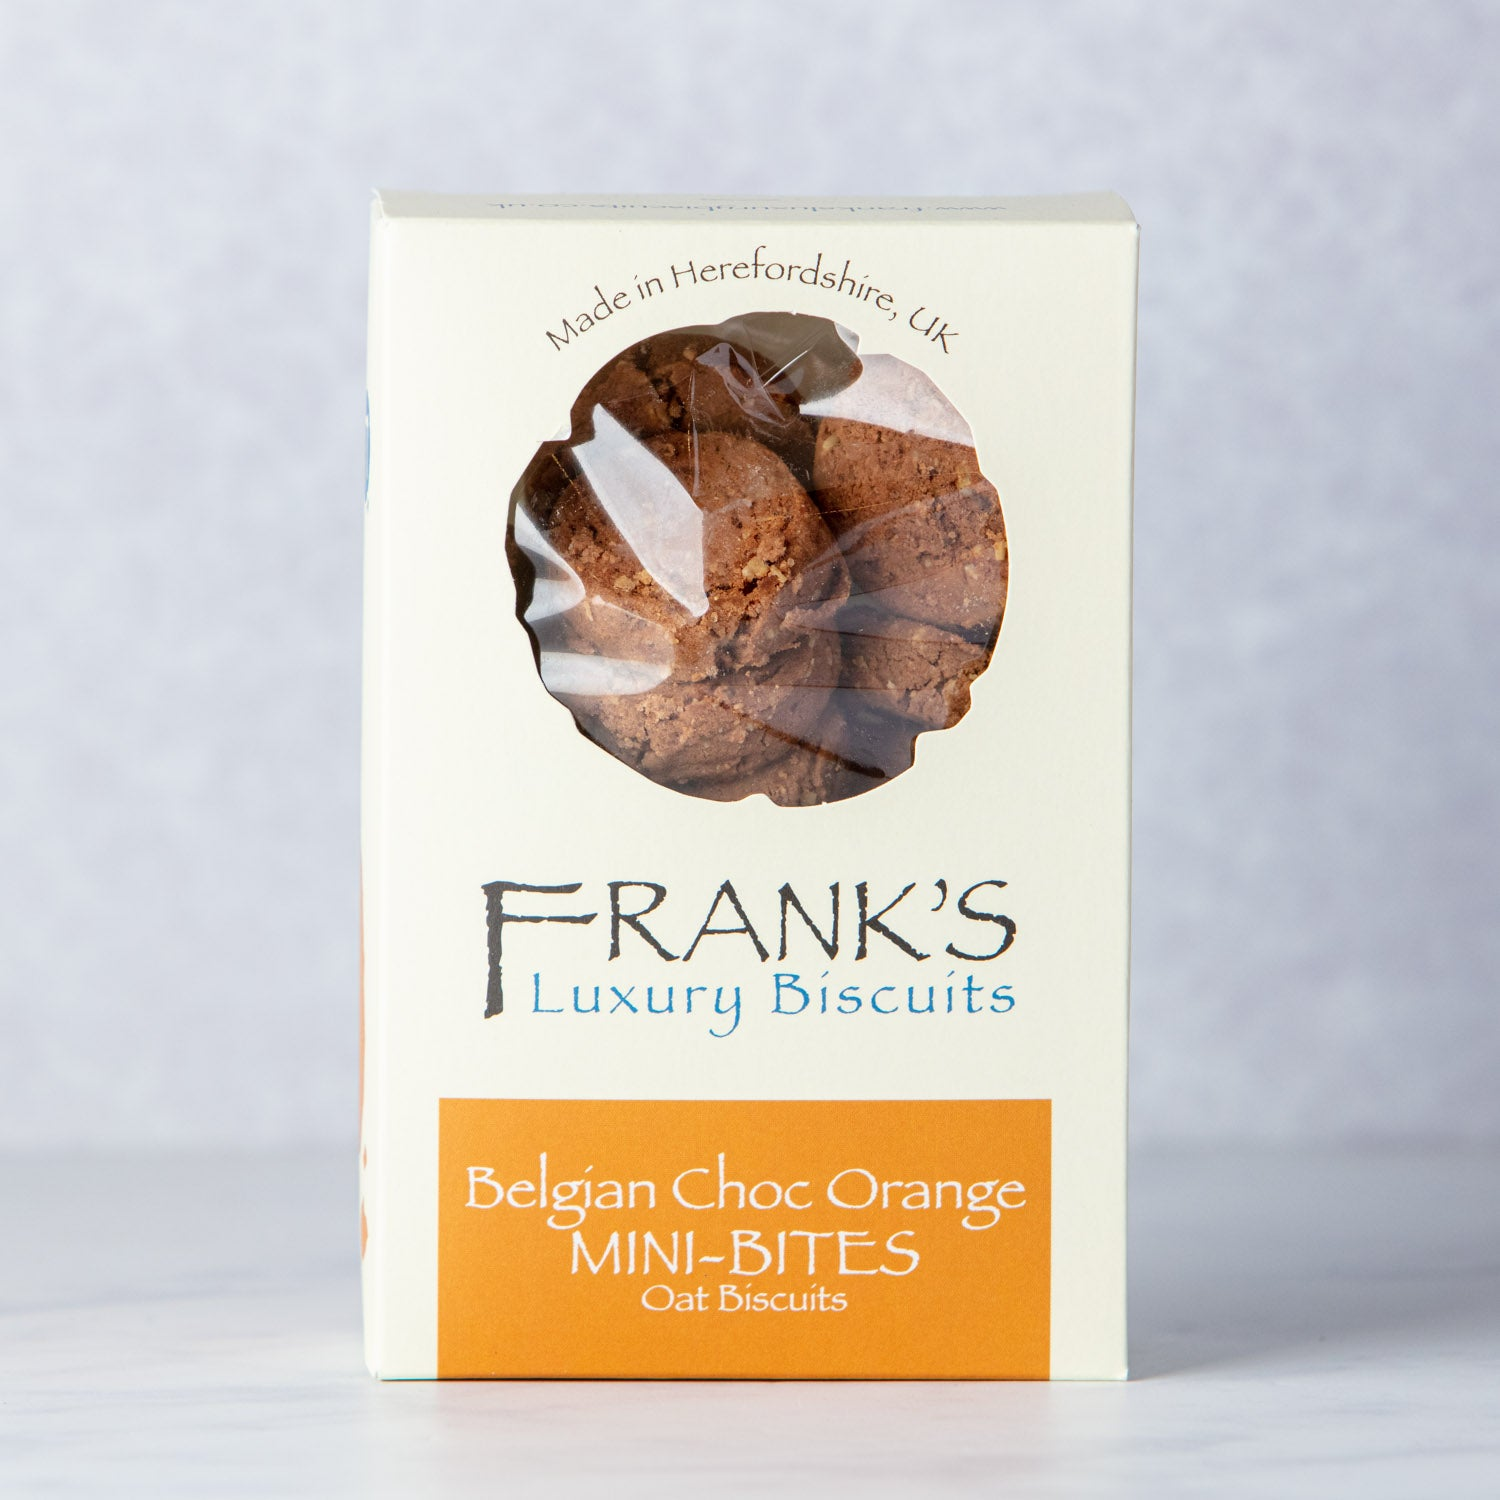 FRANKS BELGIAN CHOC ORANGE MINI OAT BISCUITS